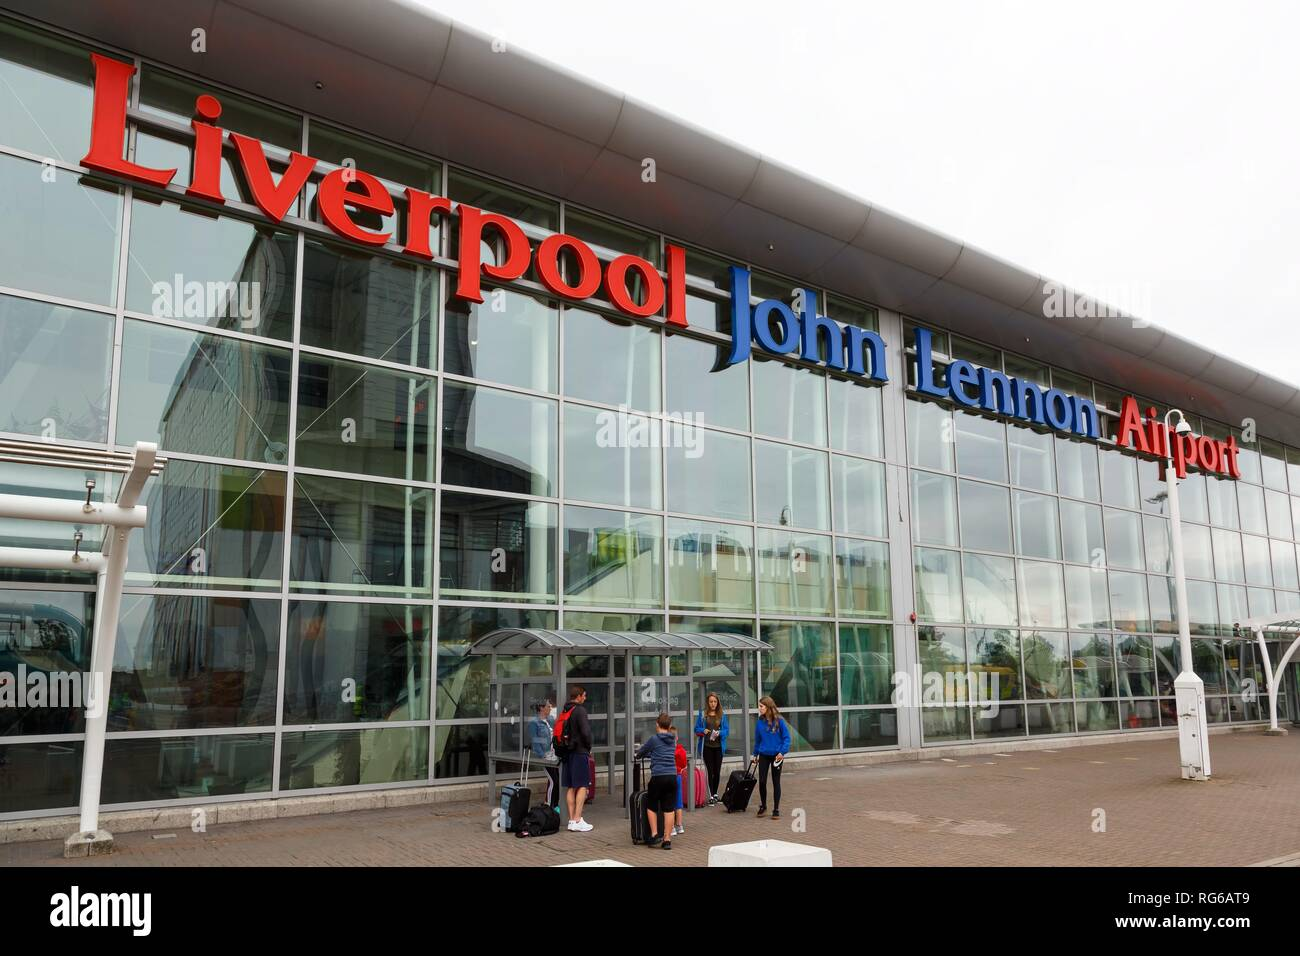 Liverpool, United Kingdom - August 14, 2017: Terminal at Liverpool airport (LPL) in the United Kingdom. | usage worldwide - Stock Image